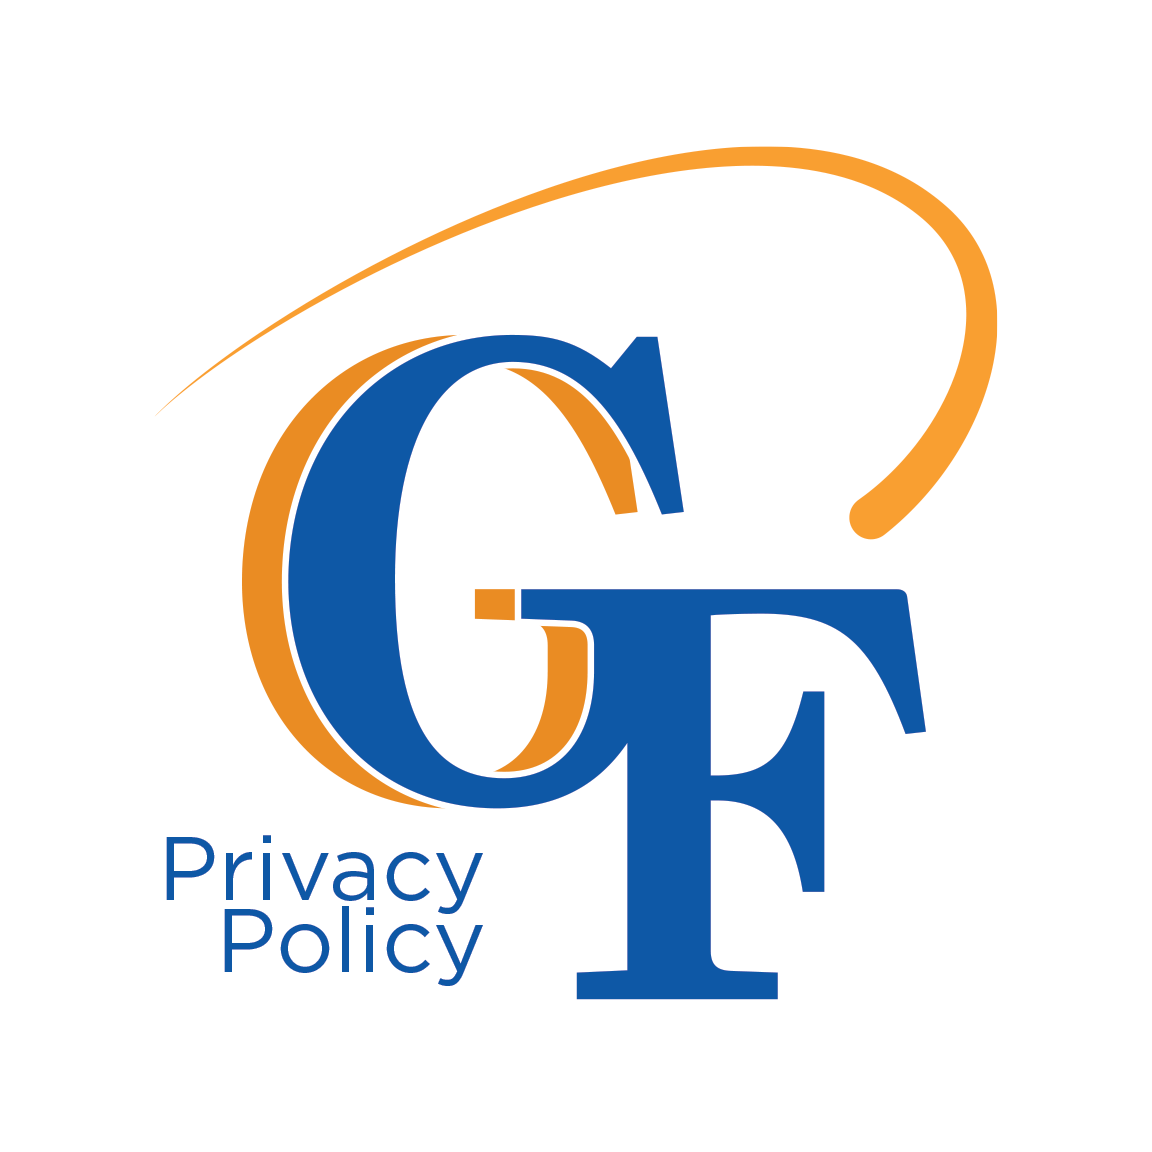 monogram-privacy-policy.png